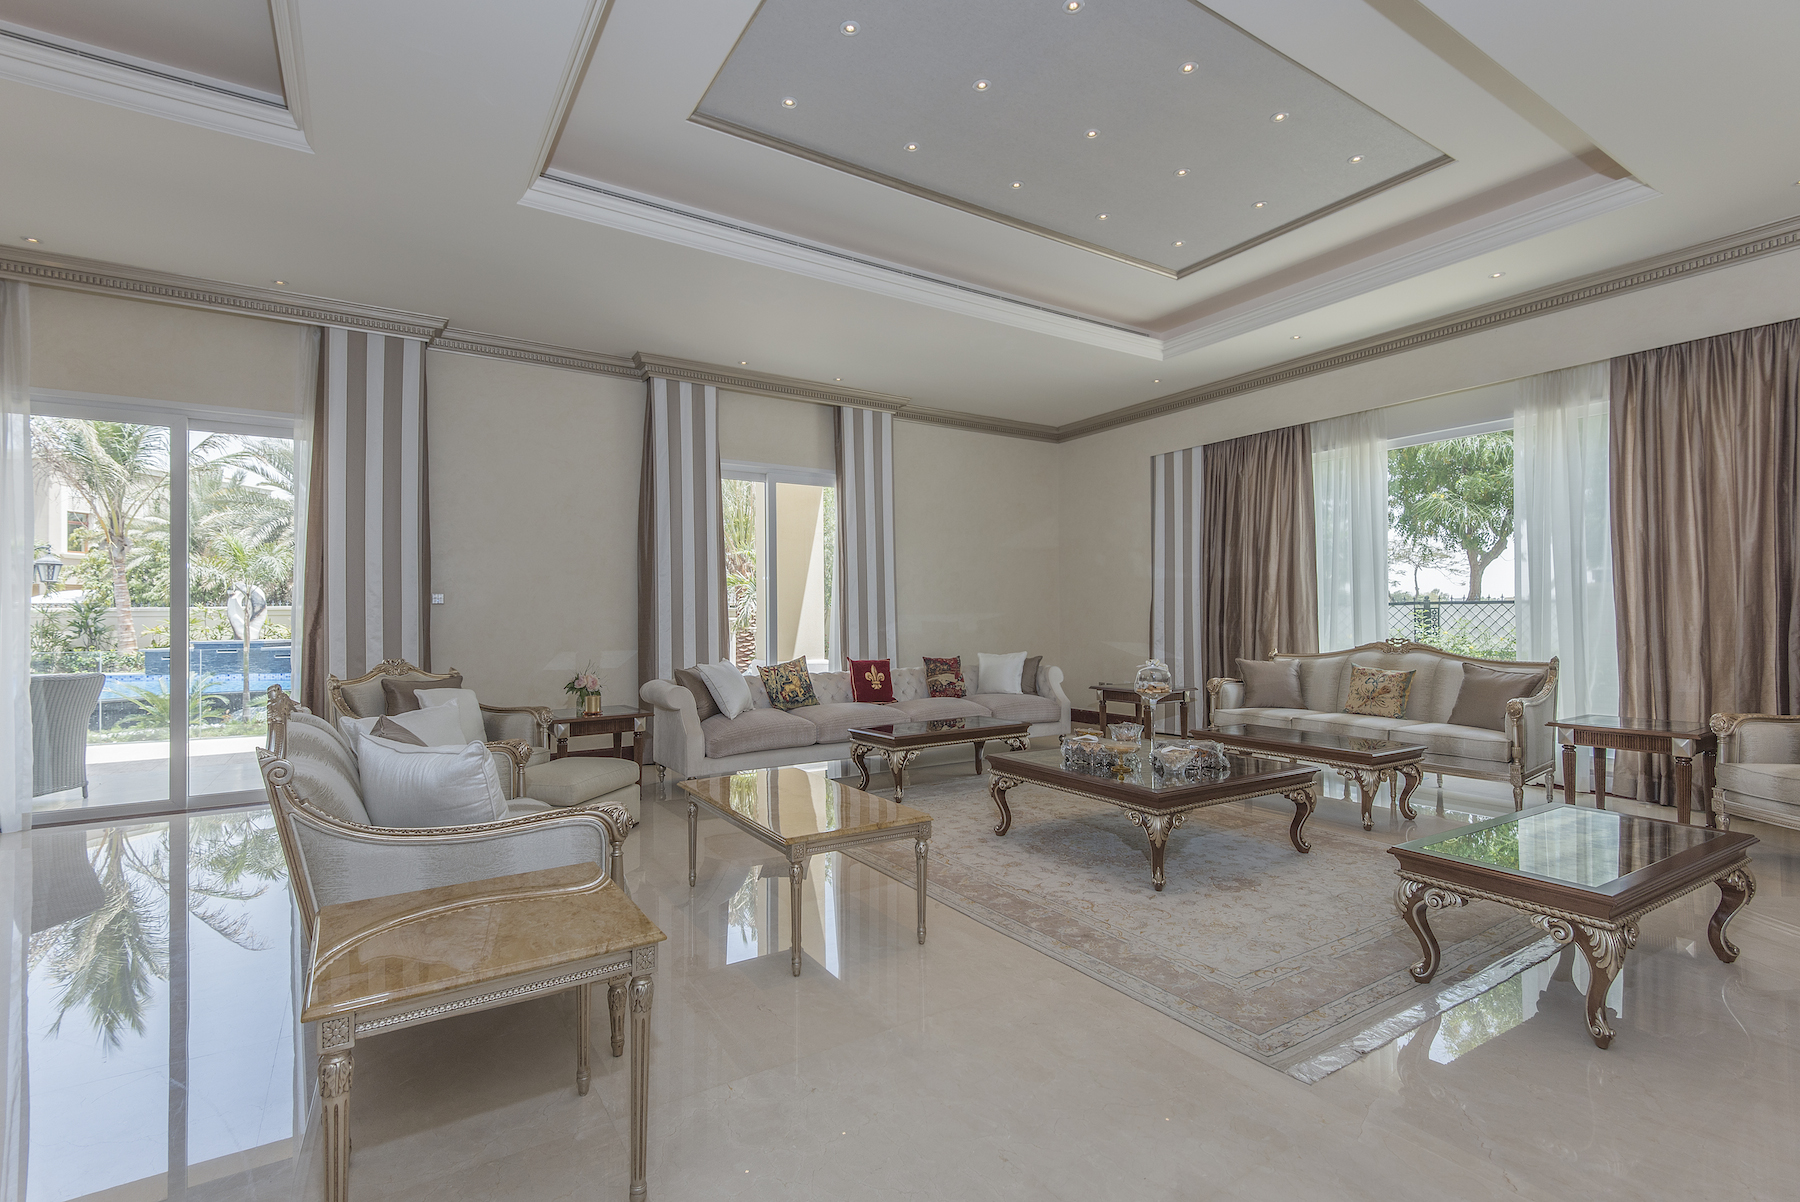 Single Family Home for Sale at Lakeview Villa Emirates Hills Emirates Hills And Living, Dubai, United Arab Emirates